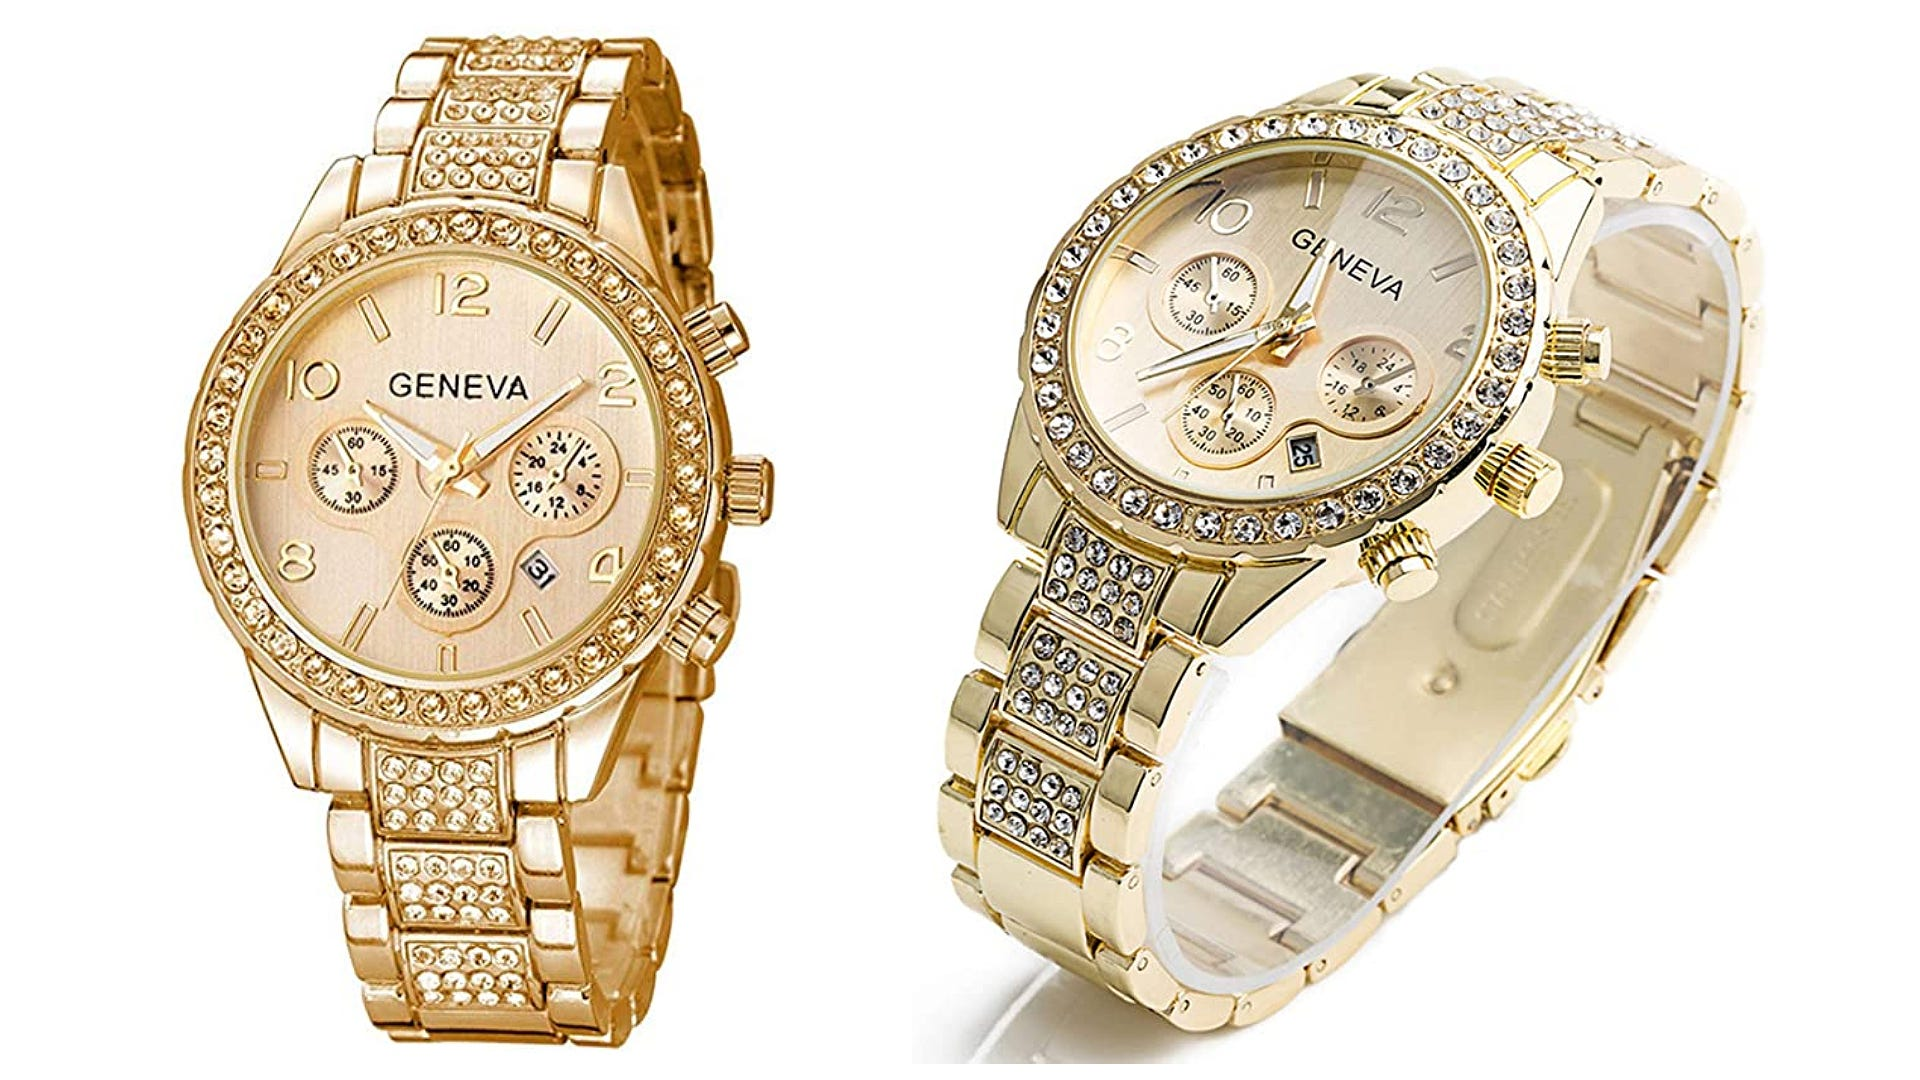 front and side view two different tones gold watch with crystals and decorative chronograph